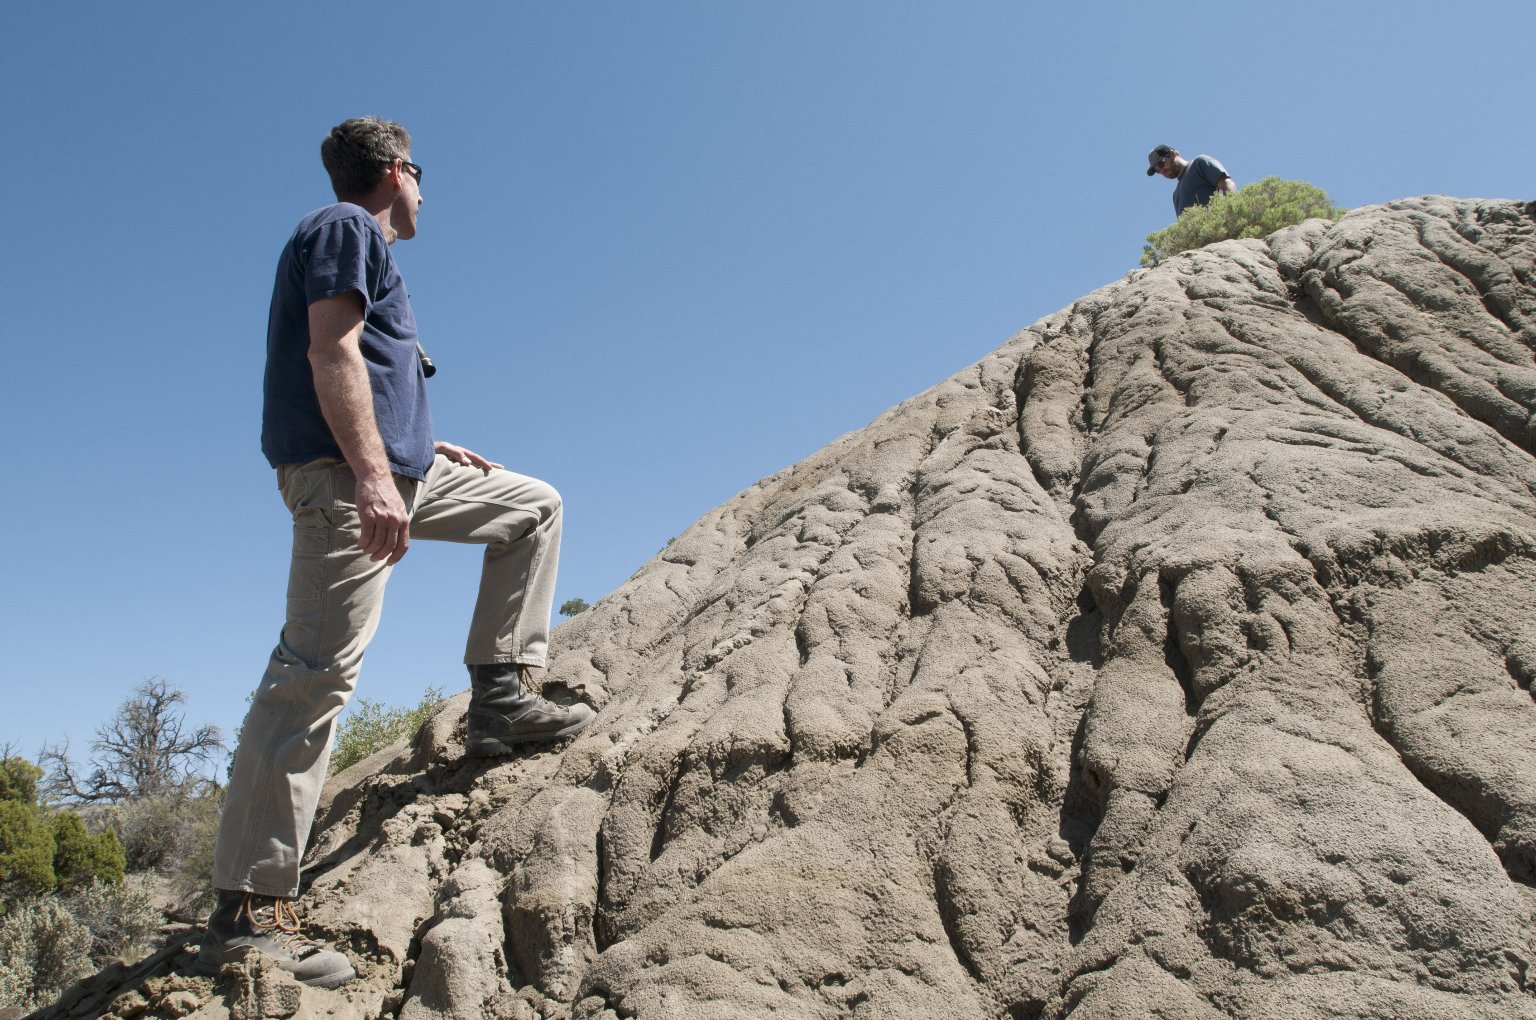 DMNS Volunteer Bryce Snellgrove(L) talks to Dr. Ian Miller up on the ridgeline.